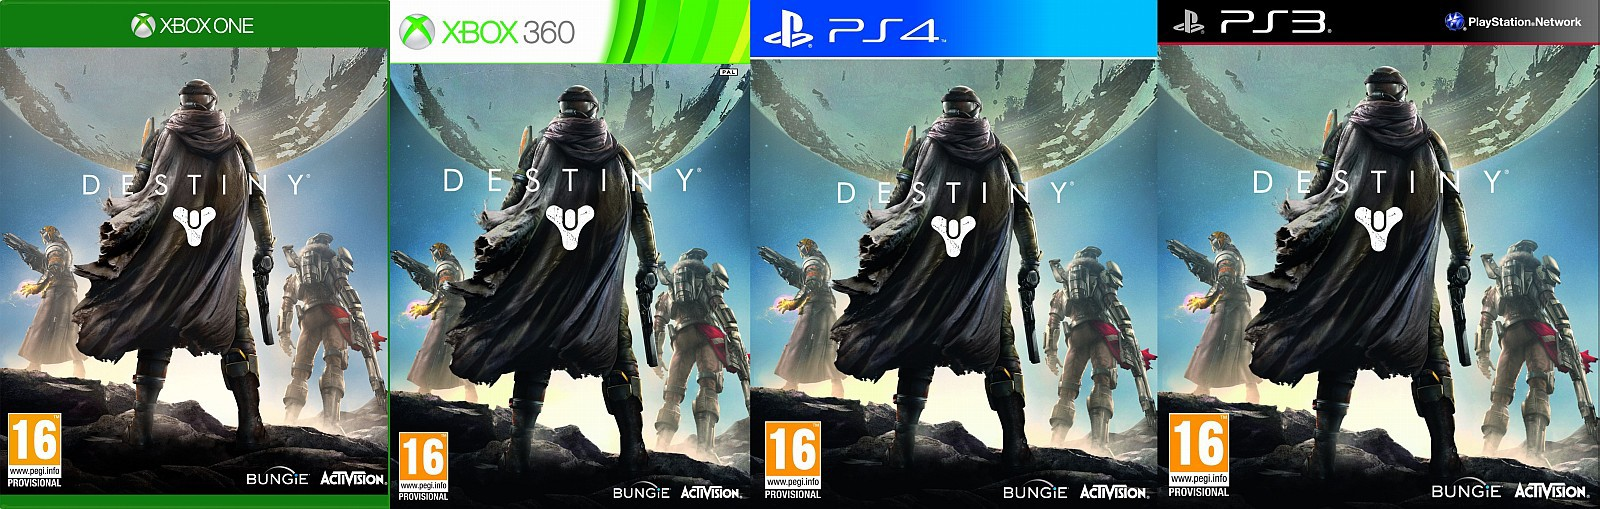 destiny_all_boxes